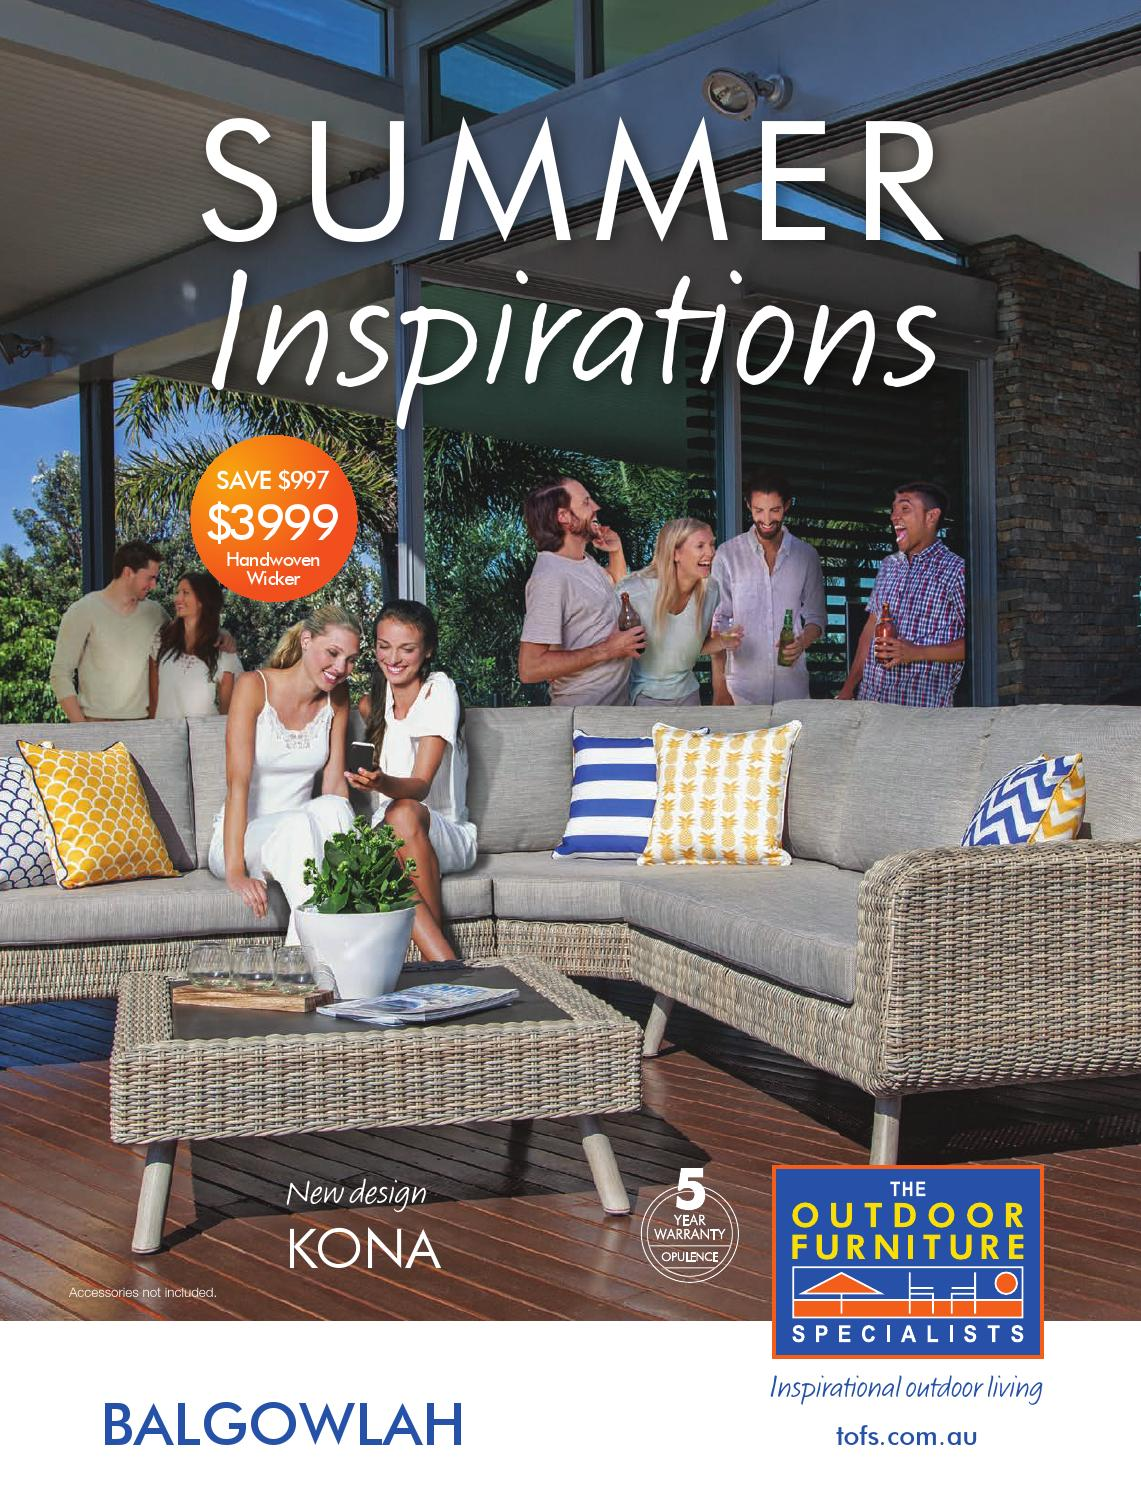 The outdoor furniture specialists balgowlah summer inspirations catalogue 2016